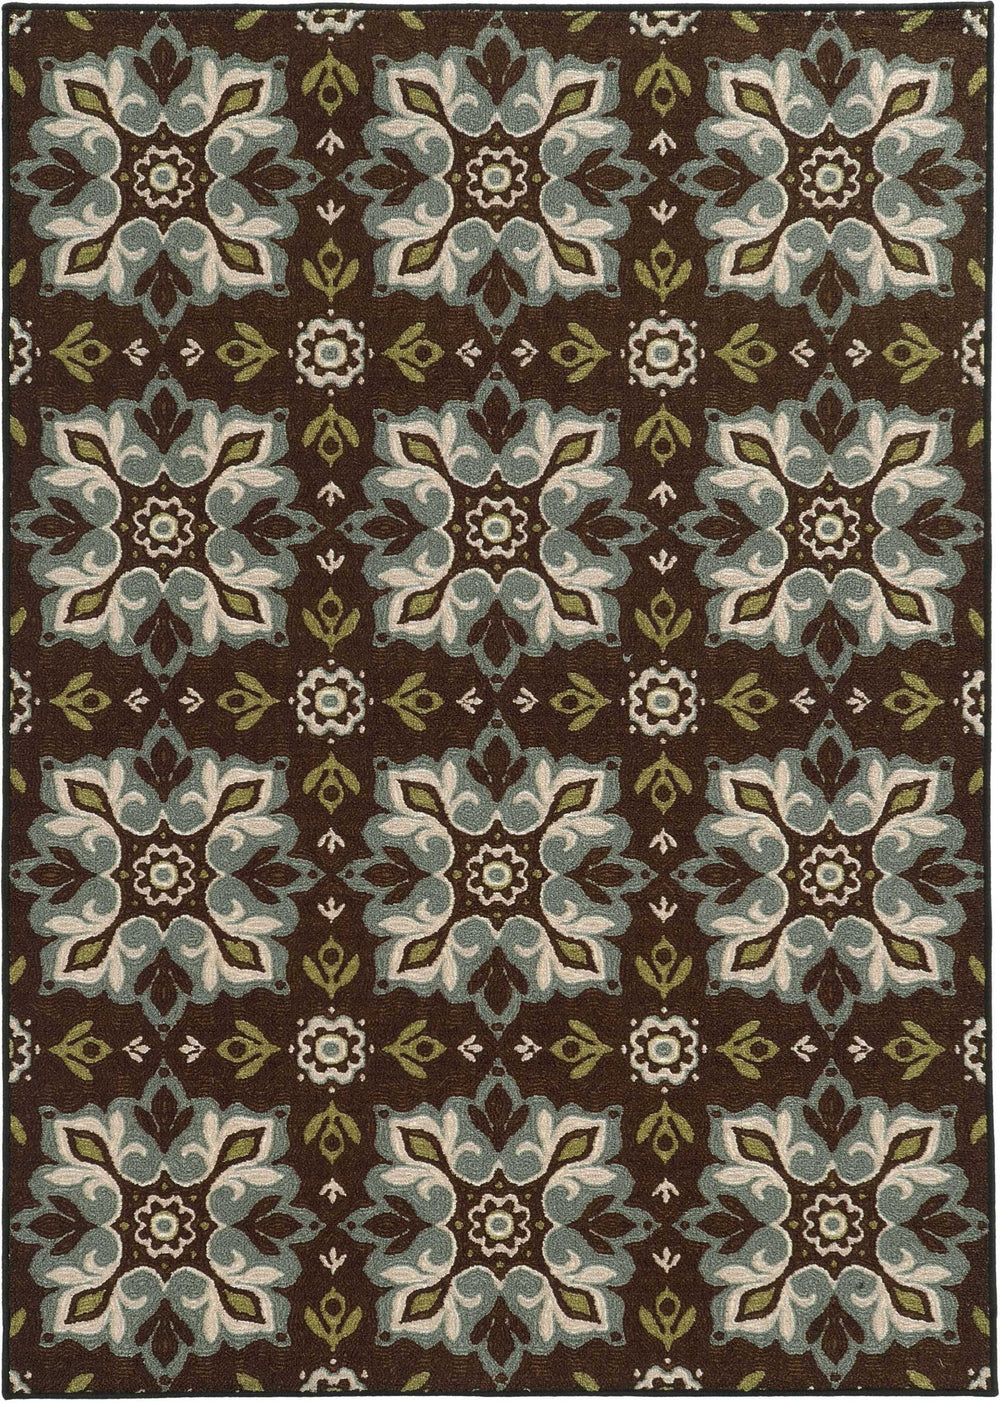 Oriental Weavers Arabella 15837 Area Rug